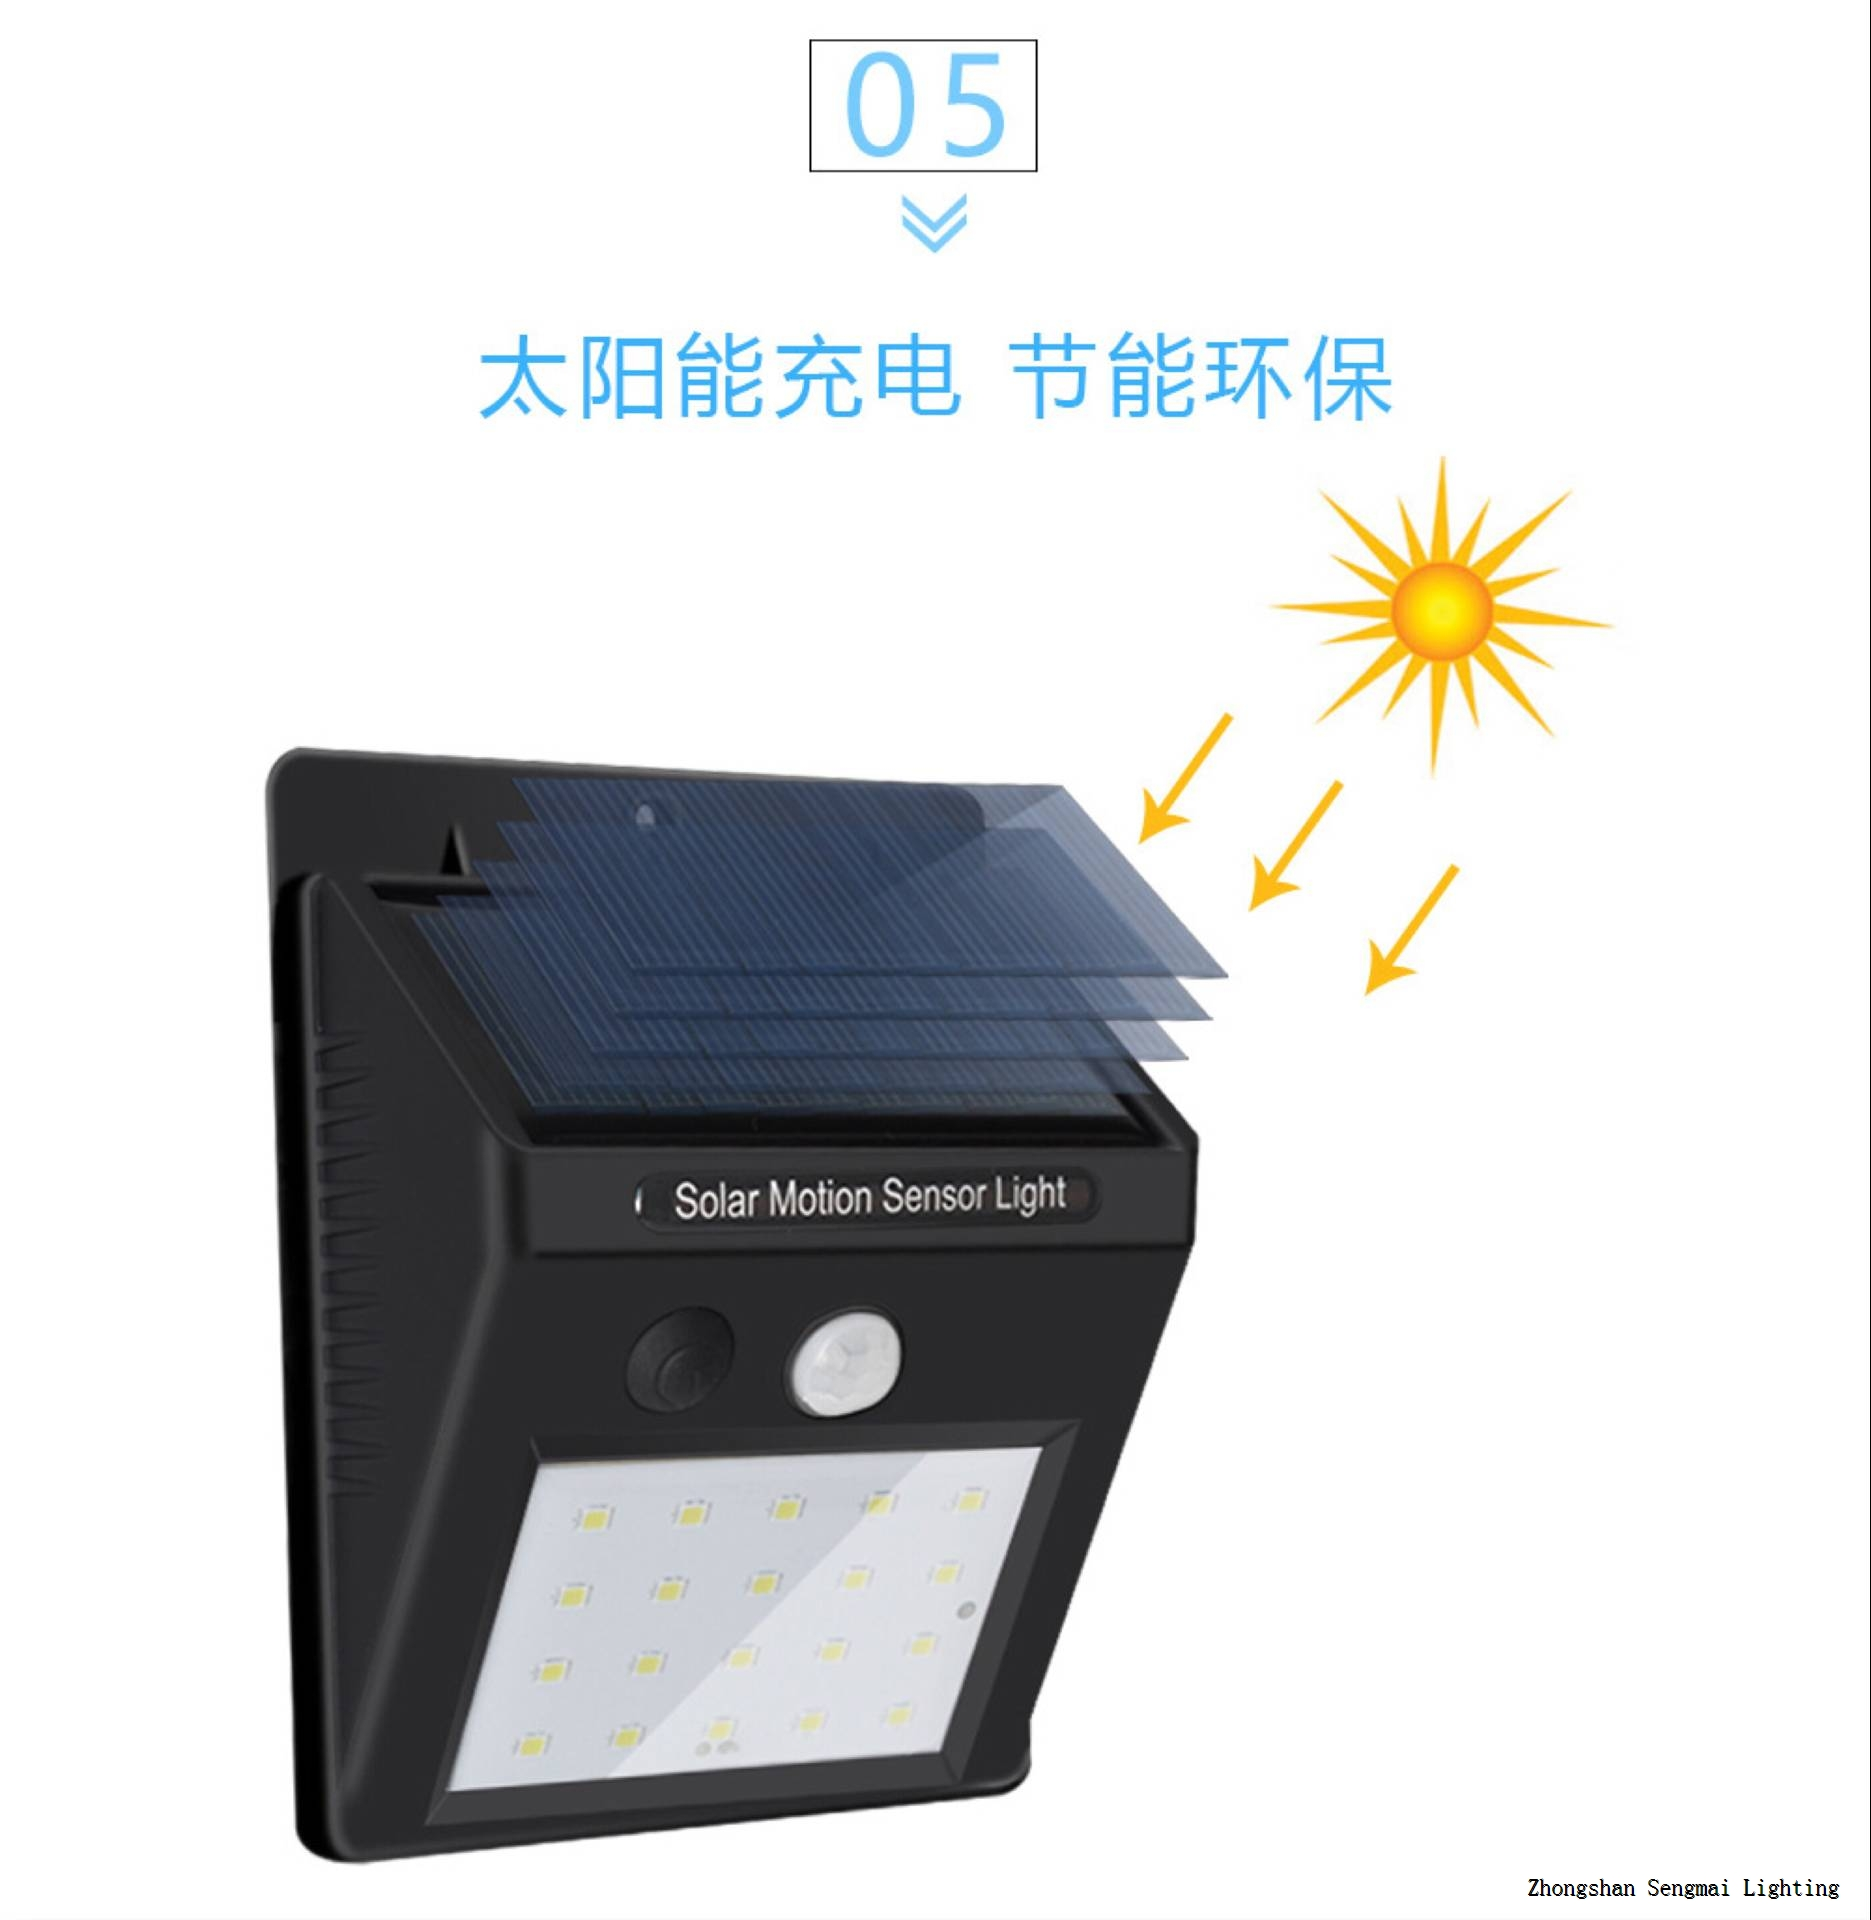 Multi-purpose solar small wall lamp.